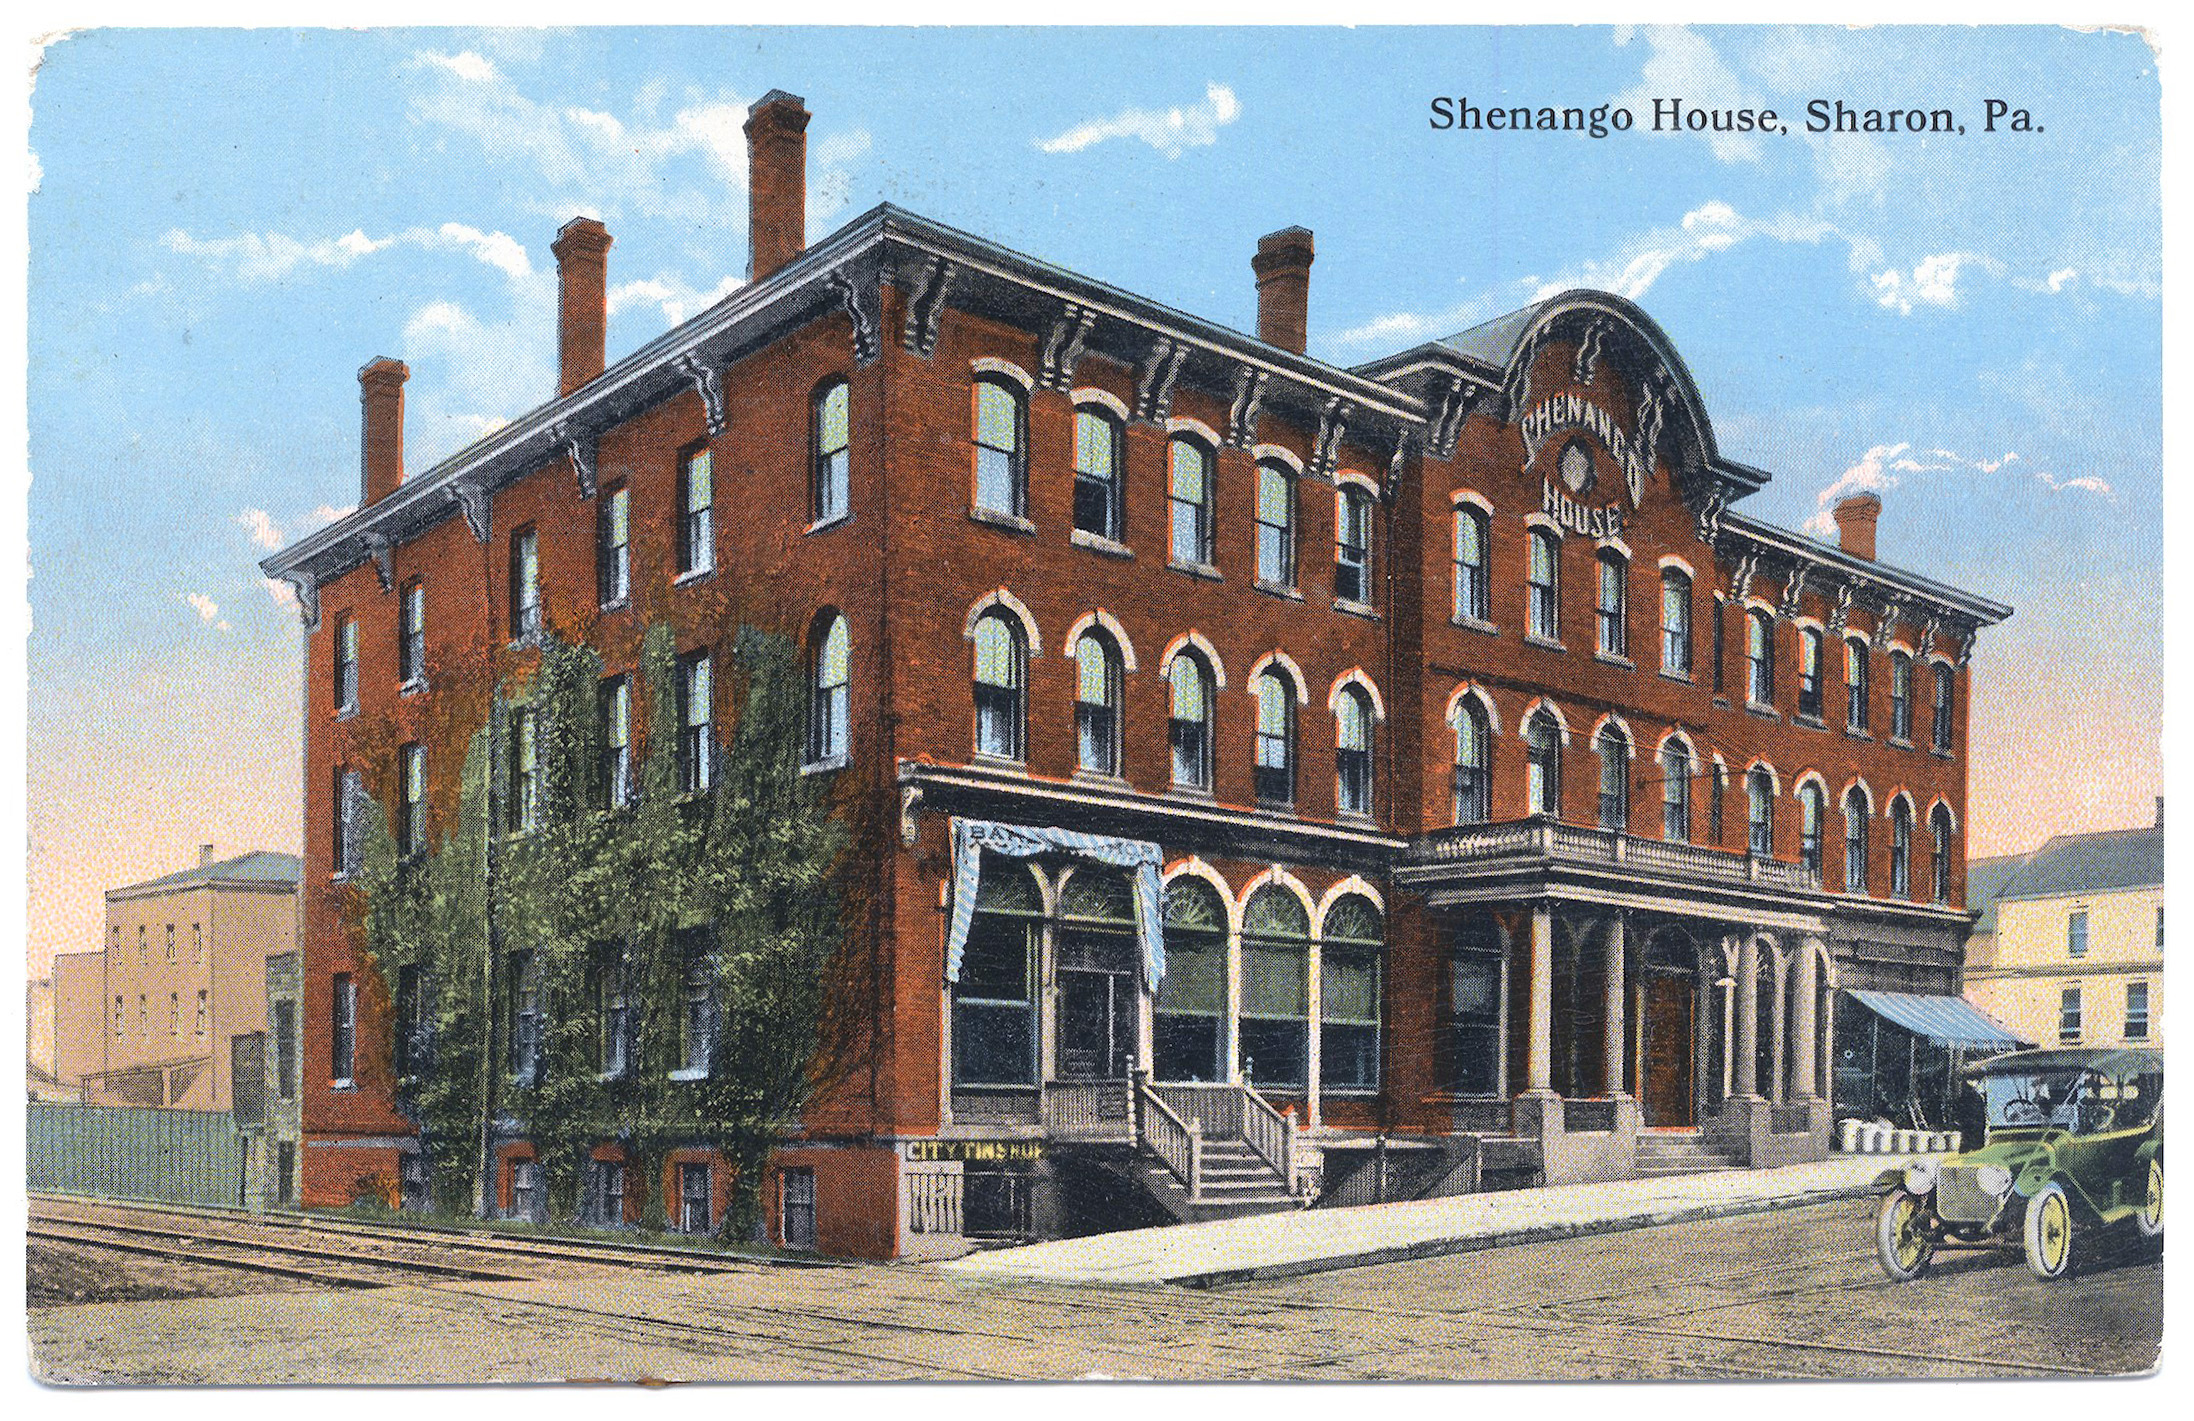 The Shenango House Hotel